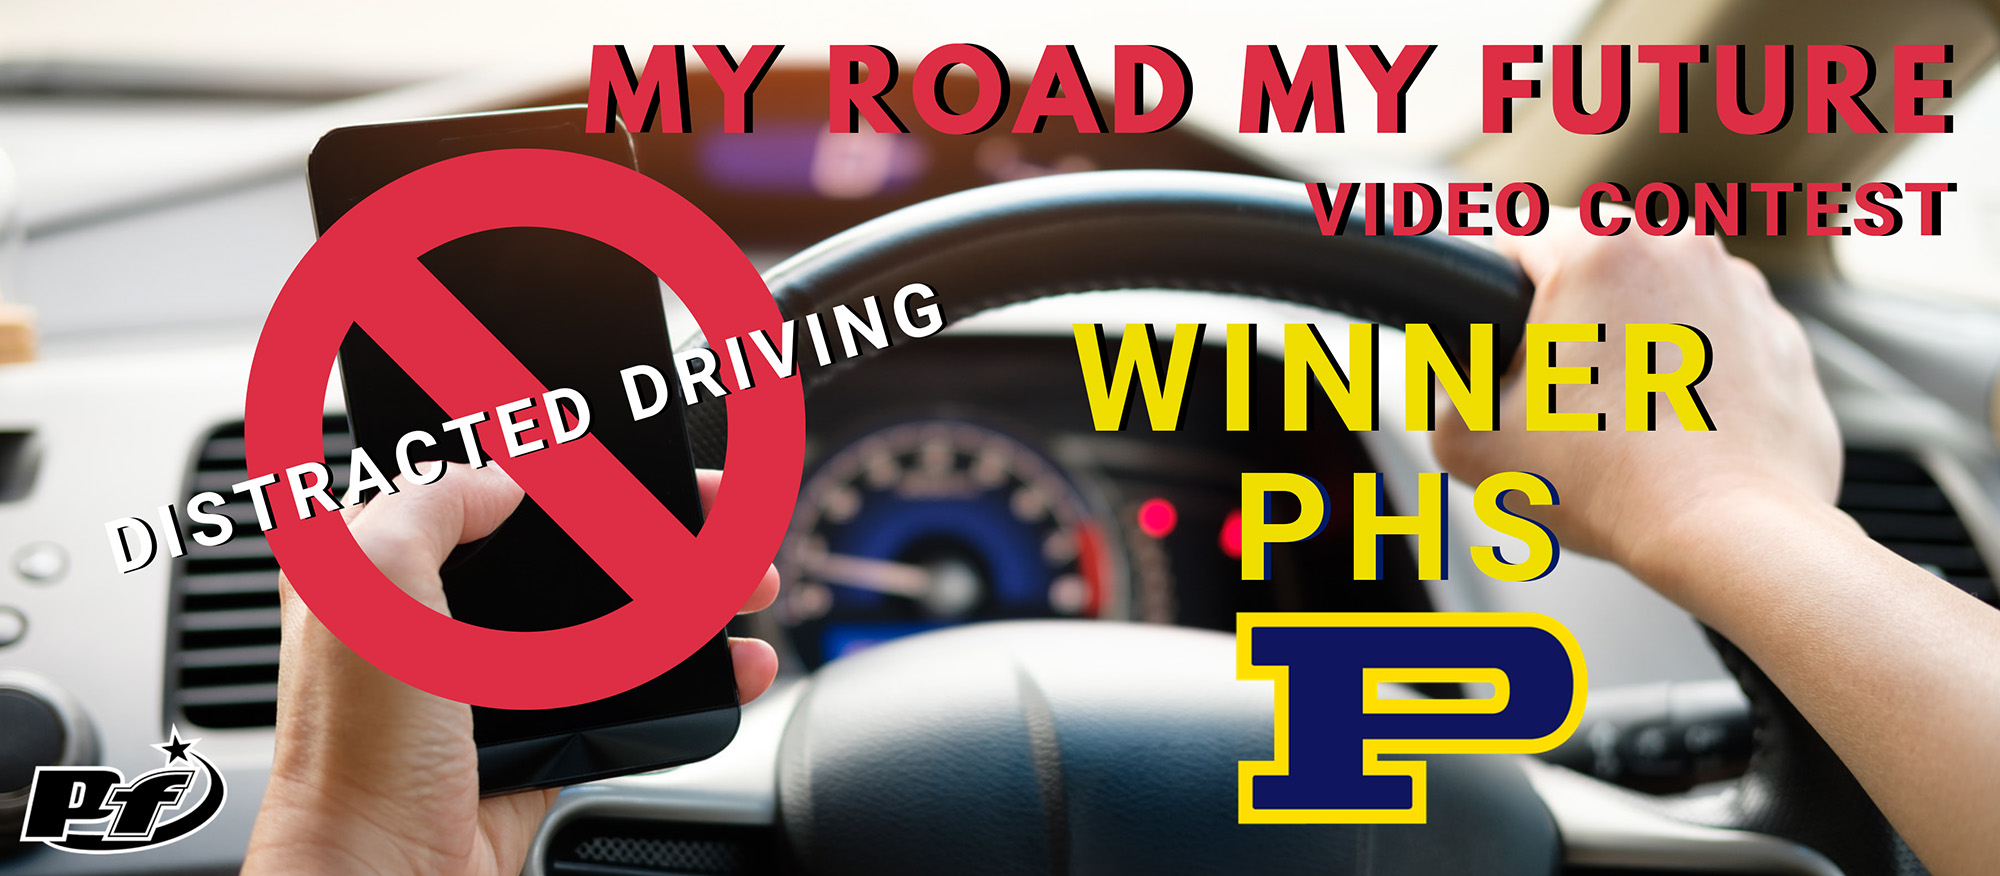 My Road My Future Video Contest Winner PHS